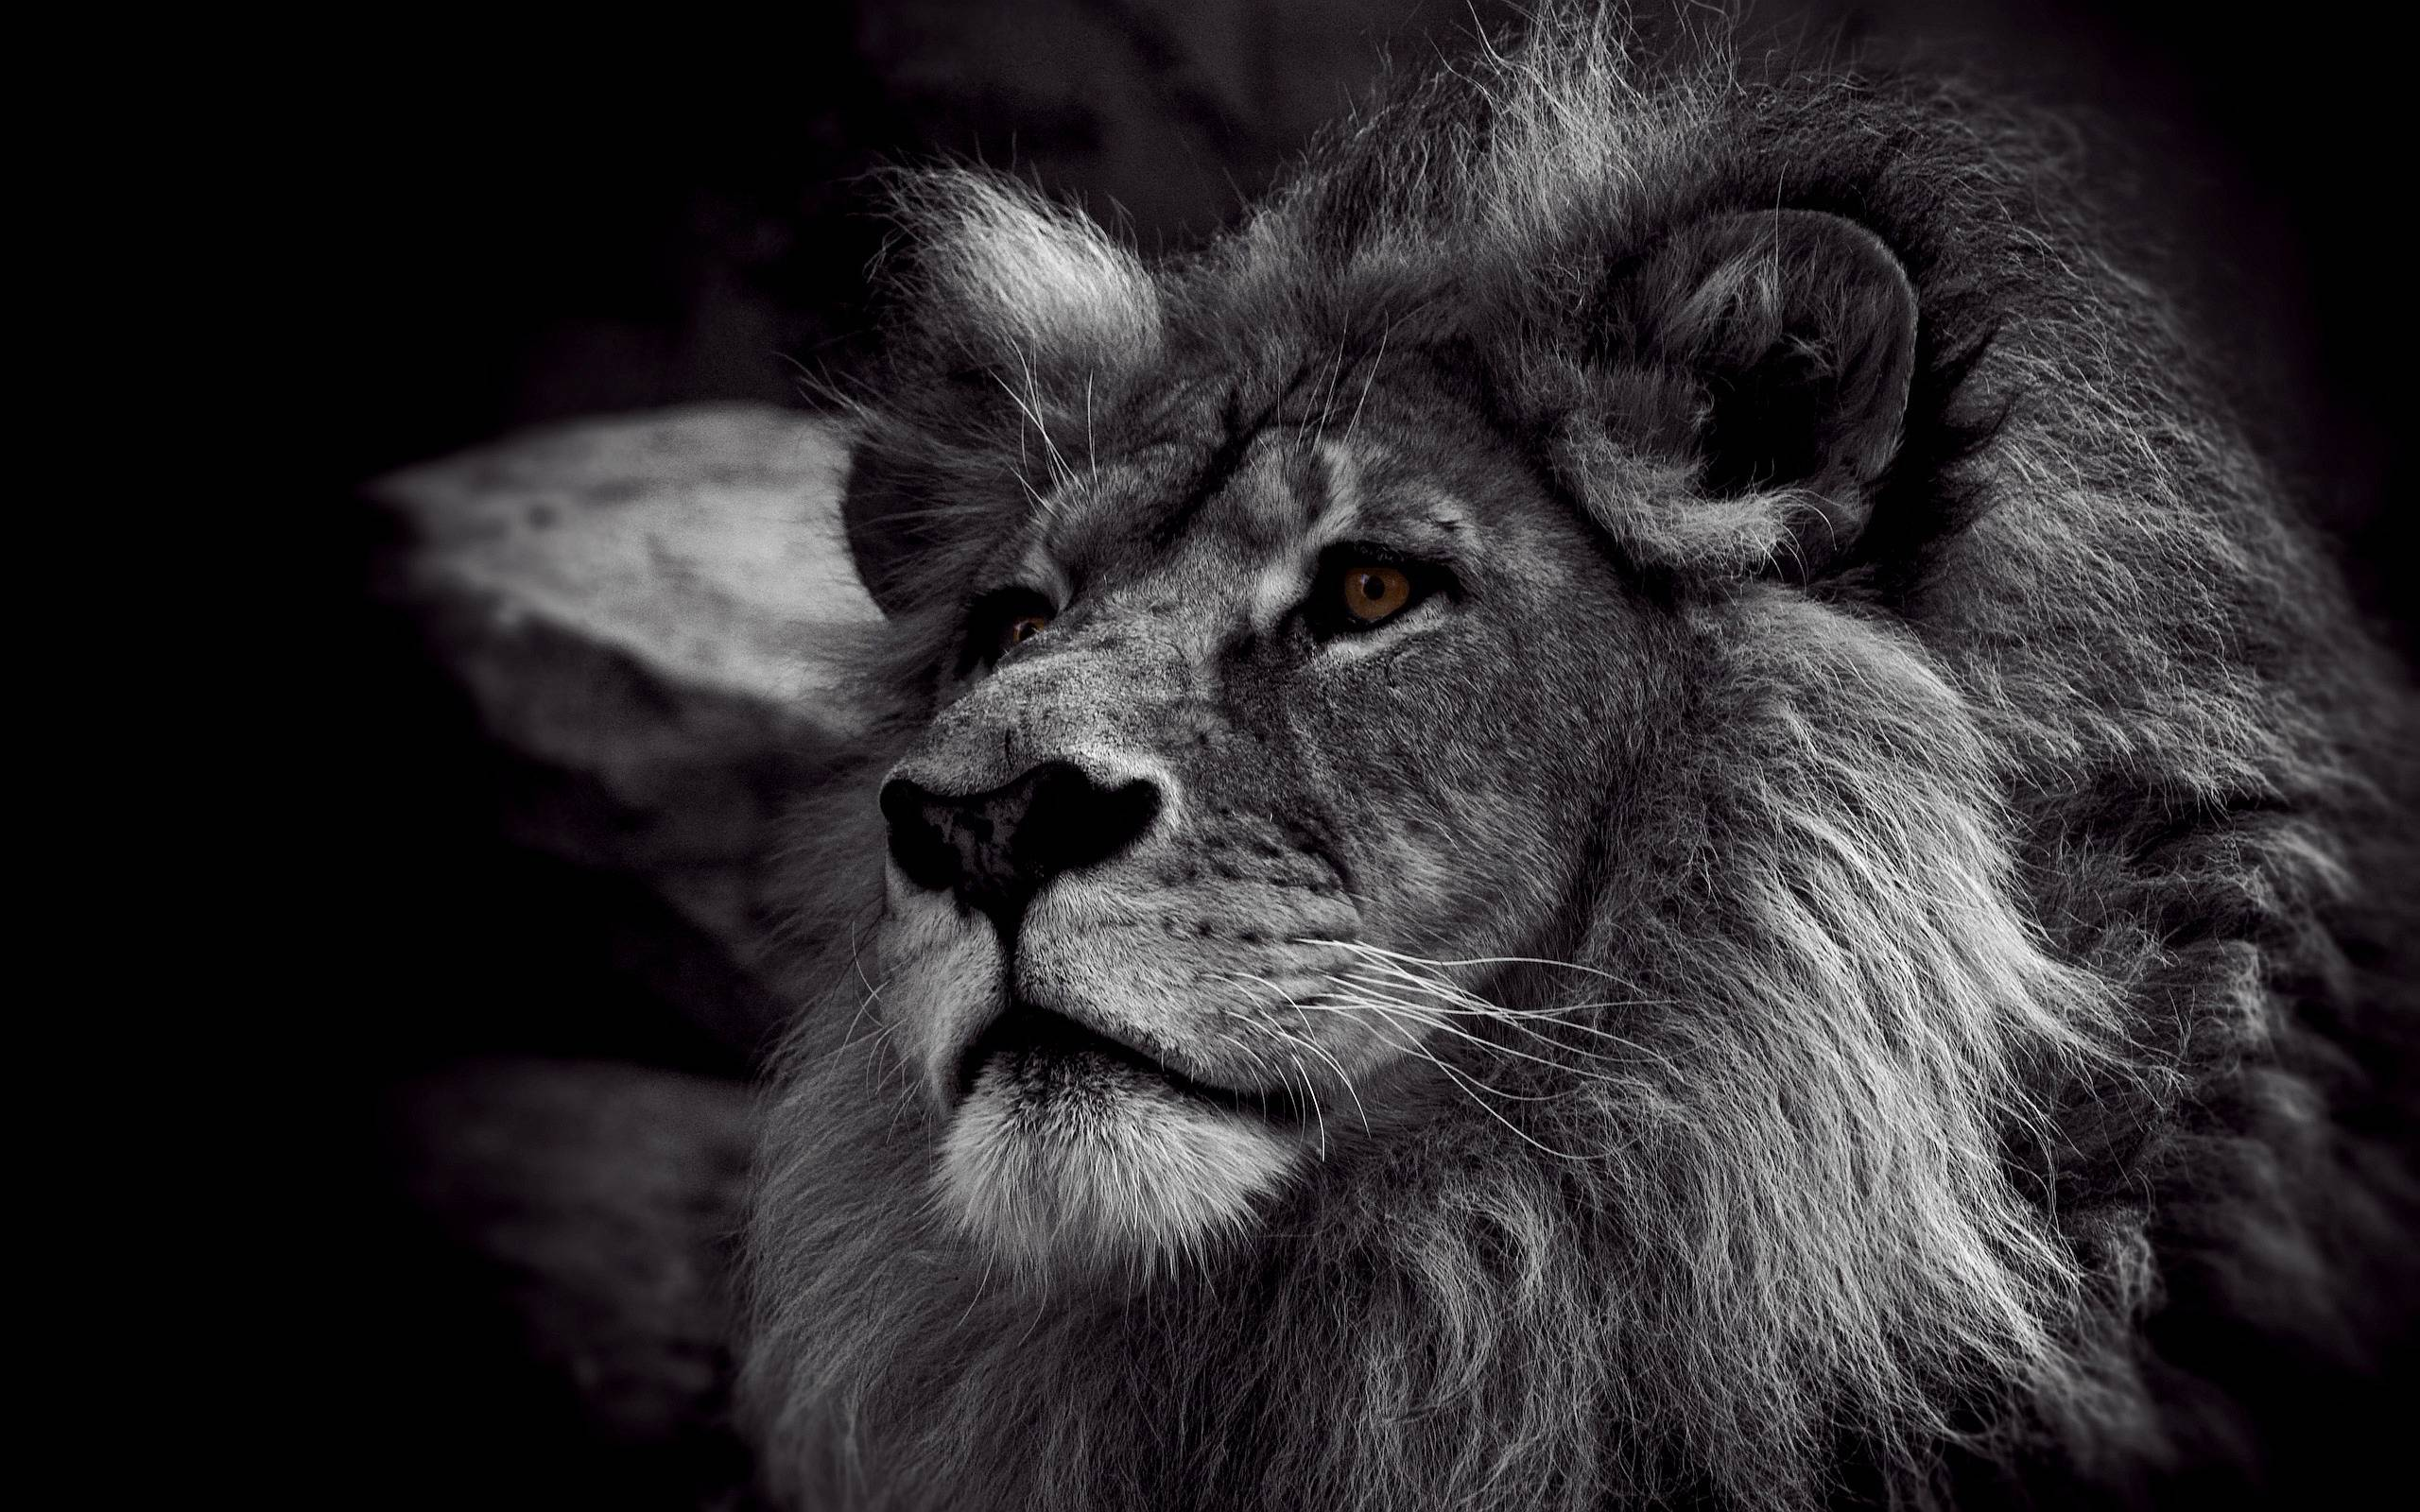 Lion Pictures Wallpapers - Wallpaper Cave